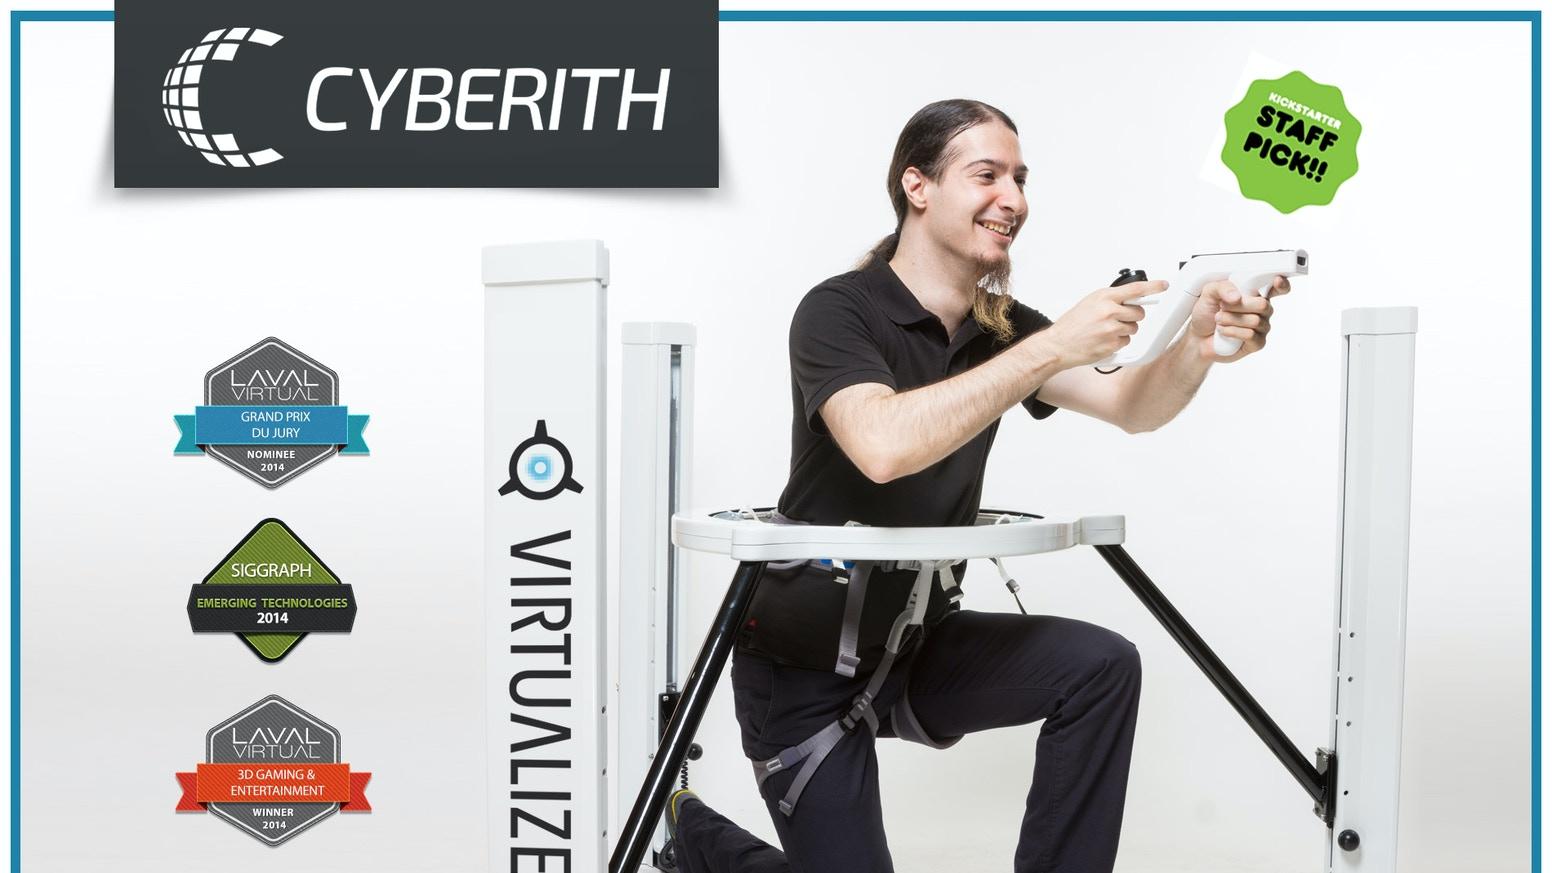 b5d00dce0e0 Cyberith Virtualizer - Immersive Virtual Reality Gaming by Cyberith ...